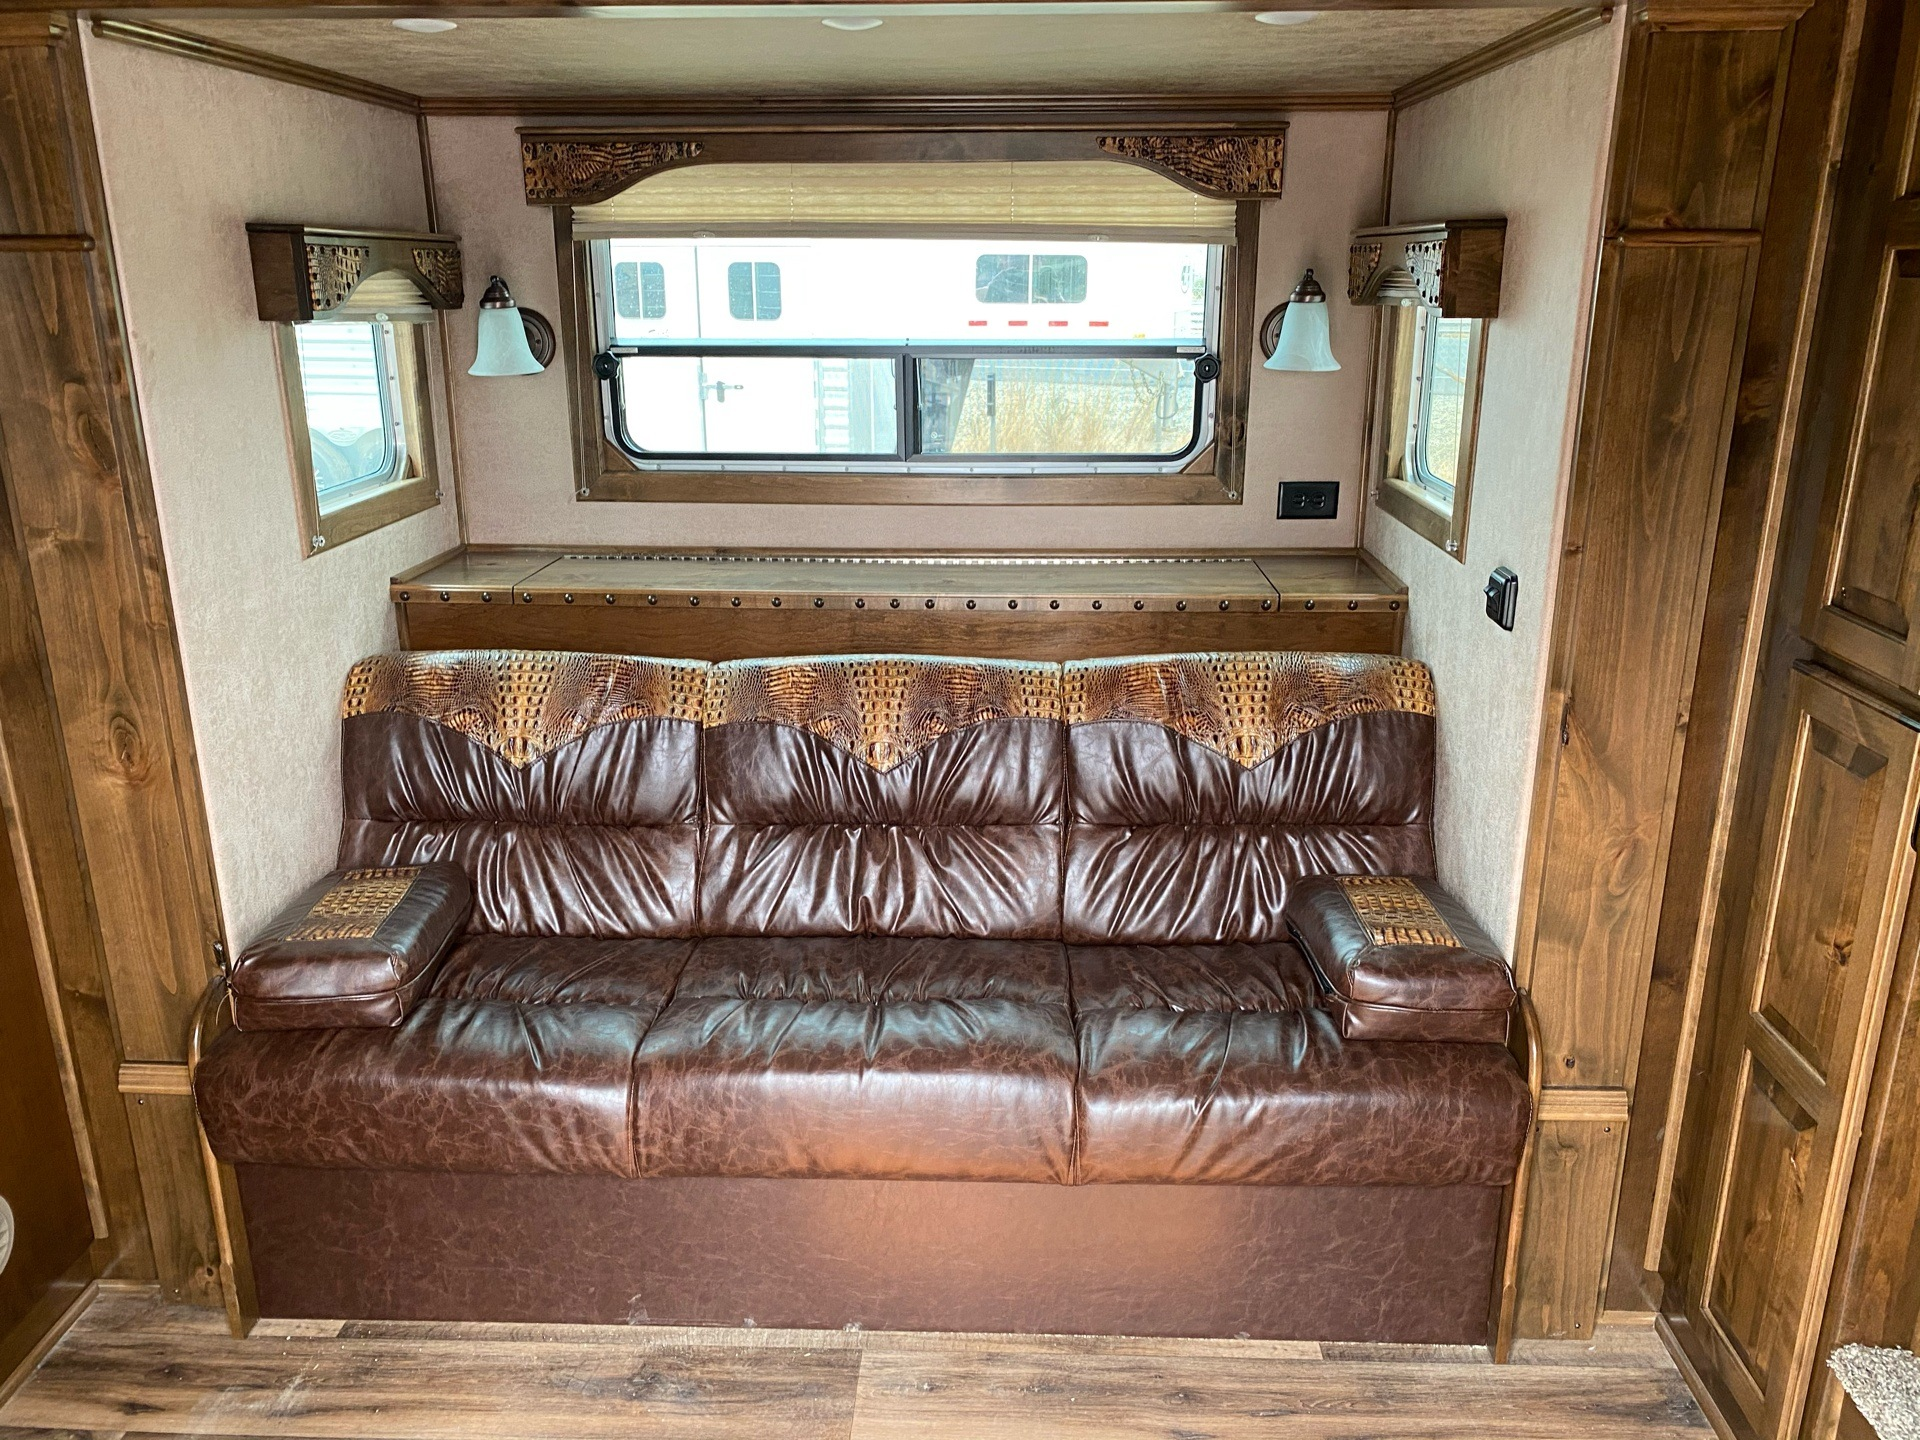 2020 4-Star Trailers 4 HORSE LIVING-QUARTER 14FT SHORTWALL in Acampo, California - Photo 5